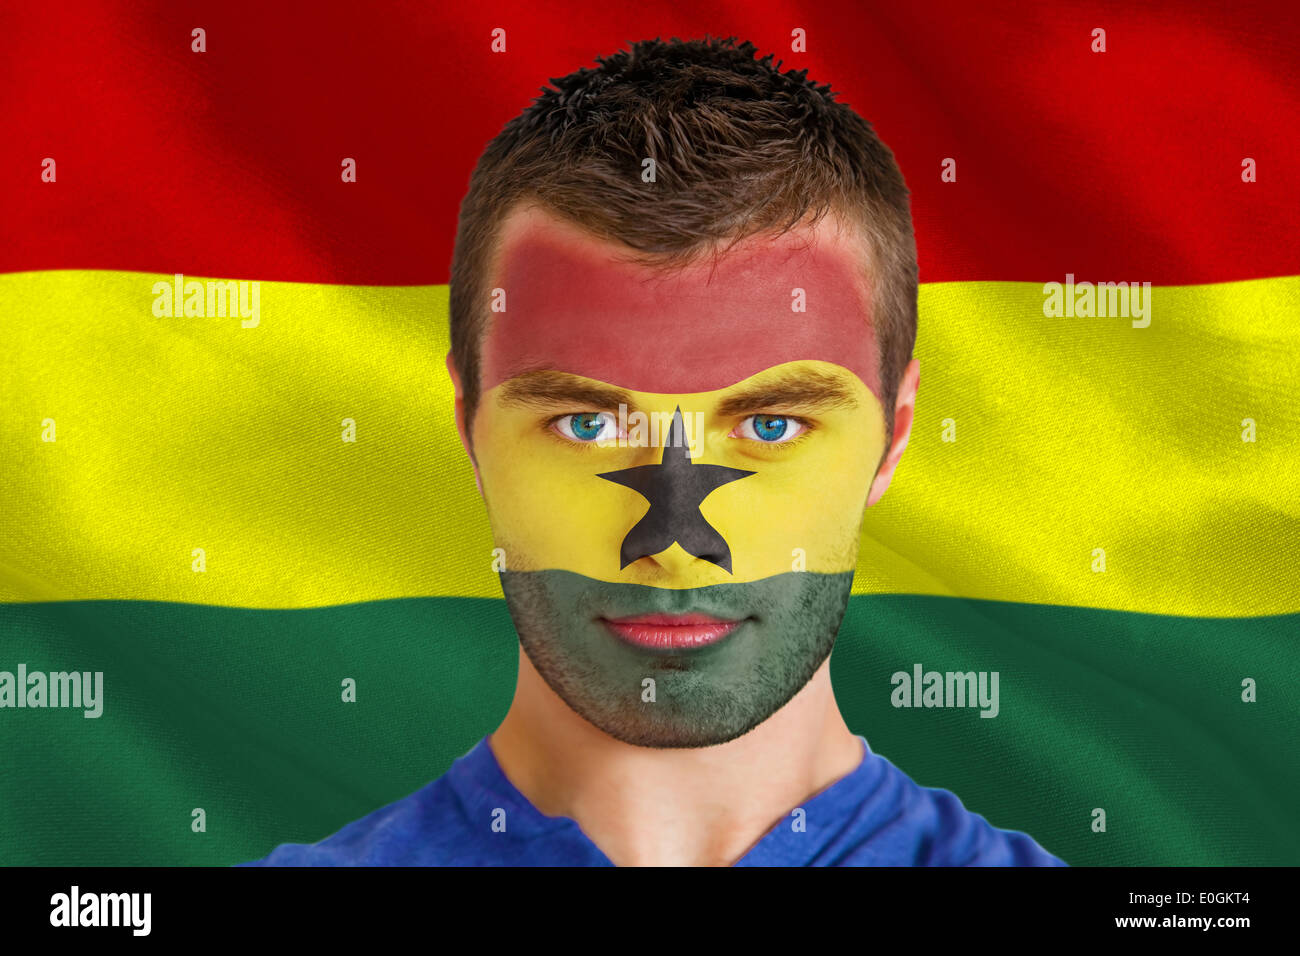 Serious young ghana fan with facepaint - Stock Image